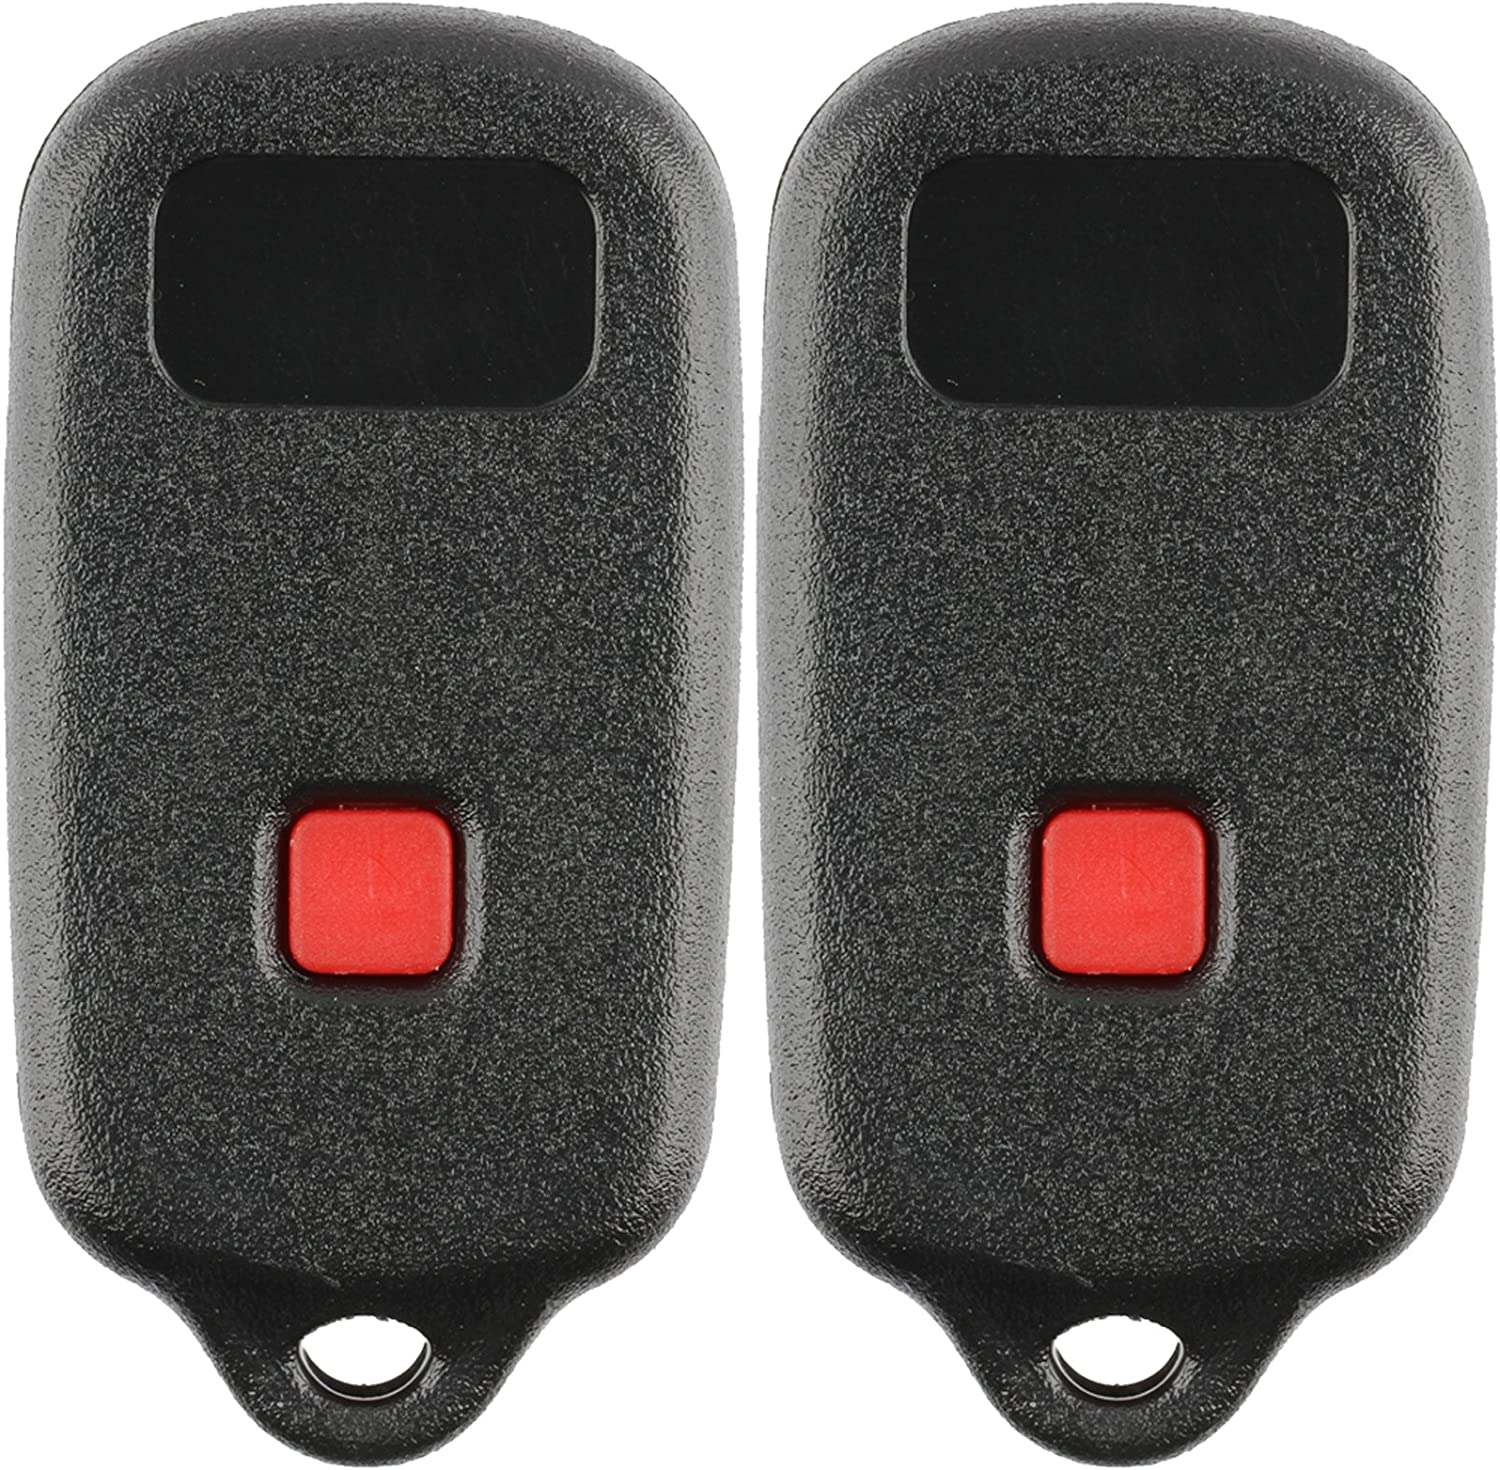 HYQ1512Y Discount Keyless Replacement Shell Case and Button Pad Compatible with Toyota 4Runner Sequoia HYQ12BBX HYQ12BAN